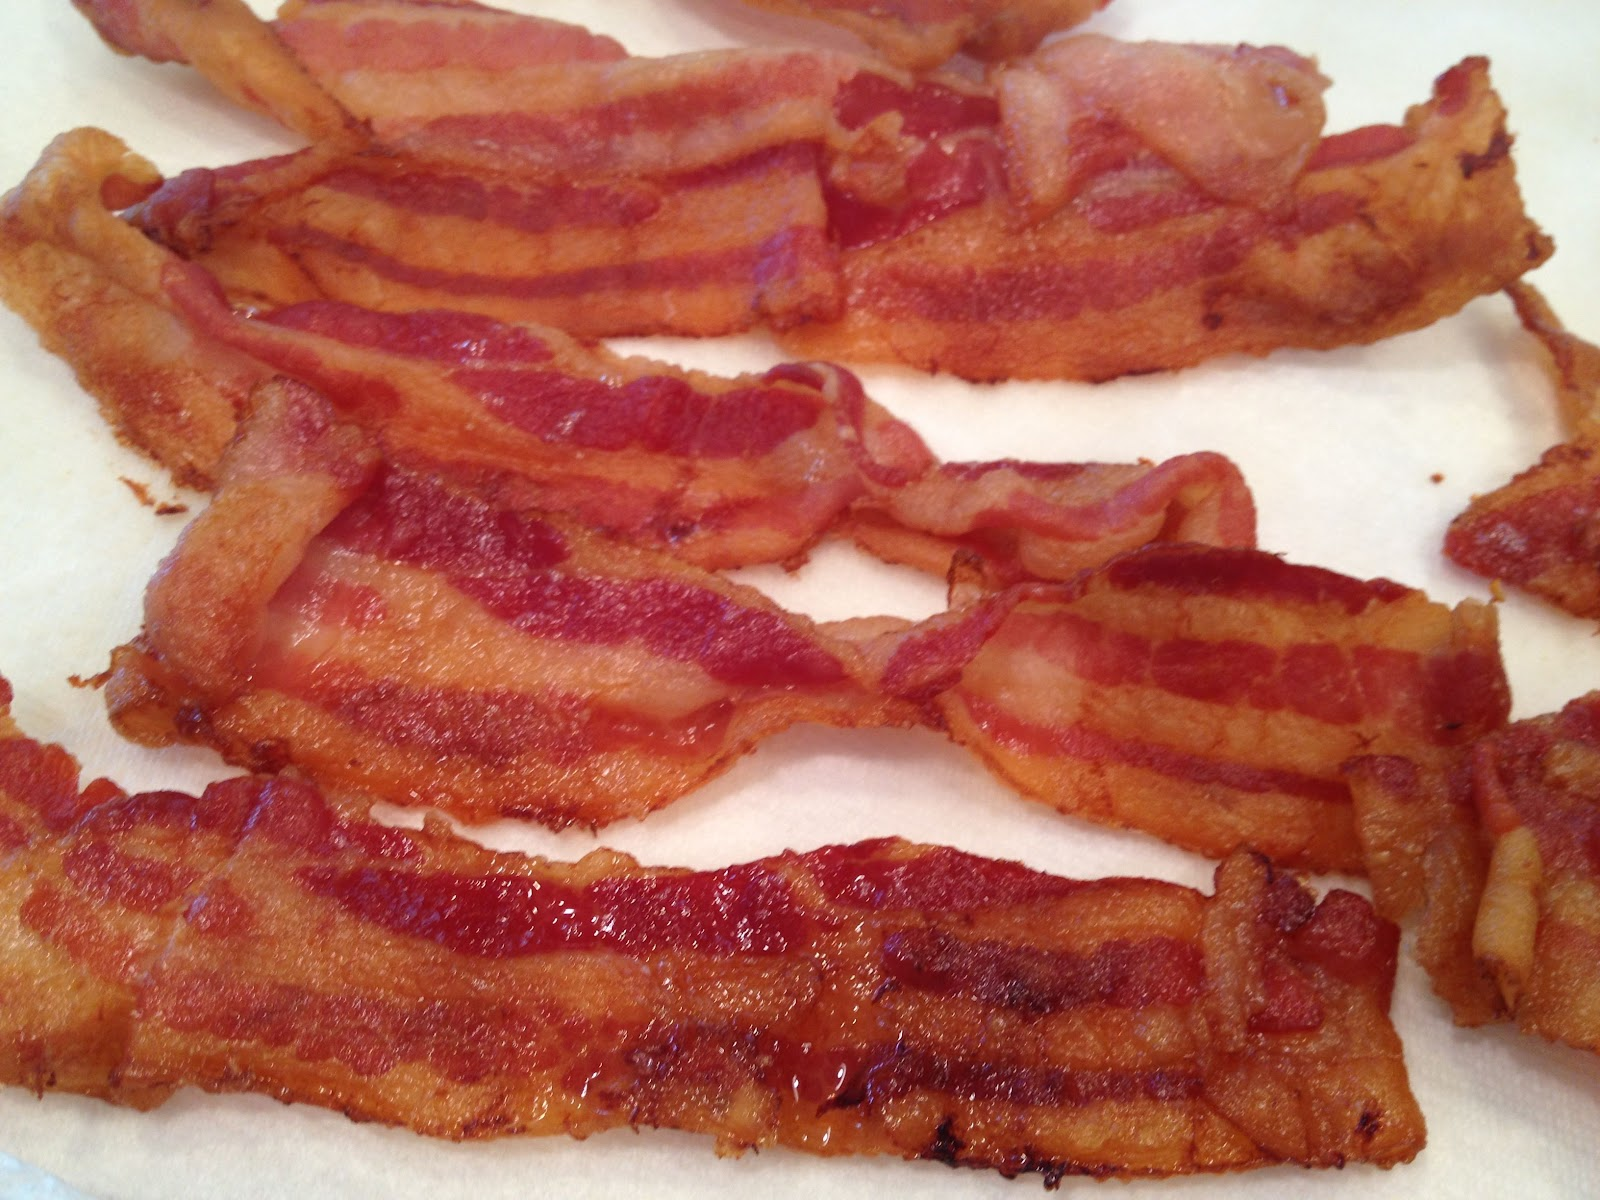 bacon in your frid...